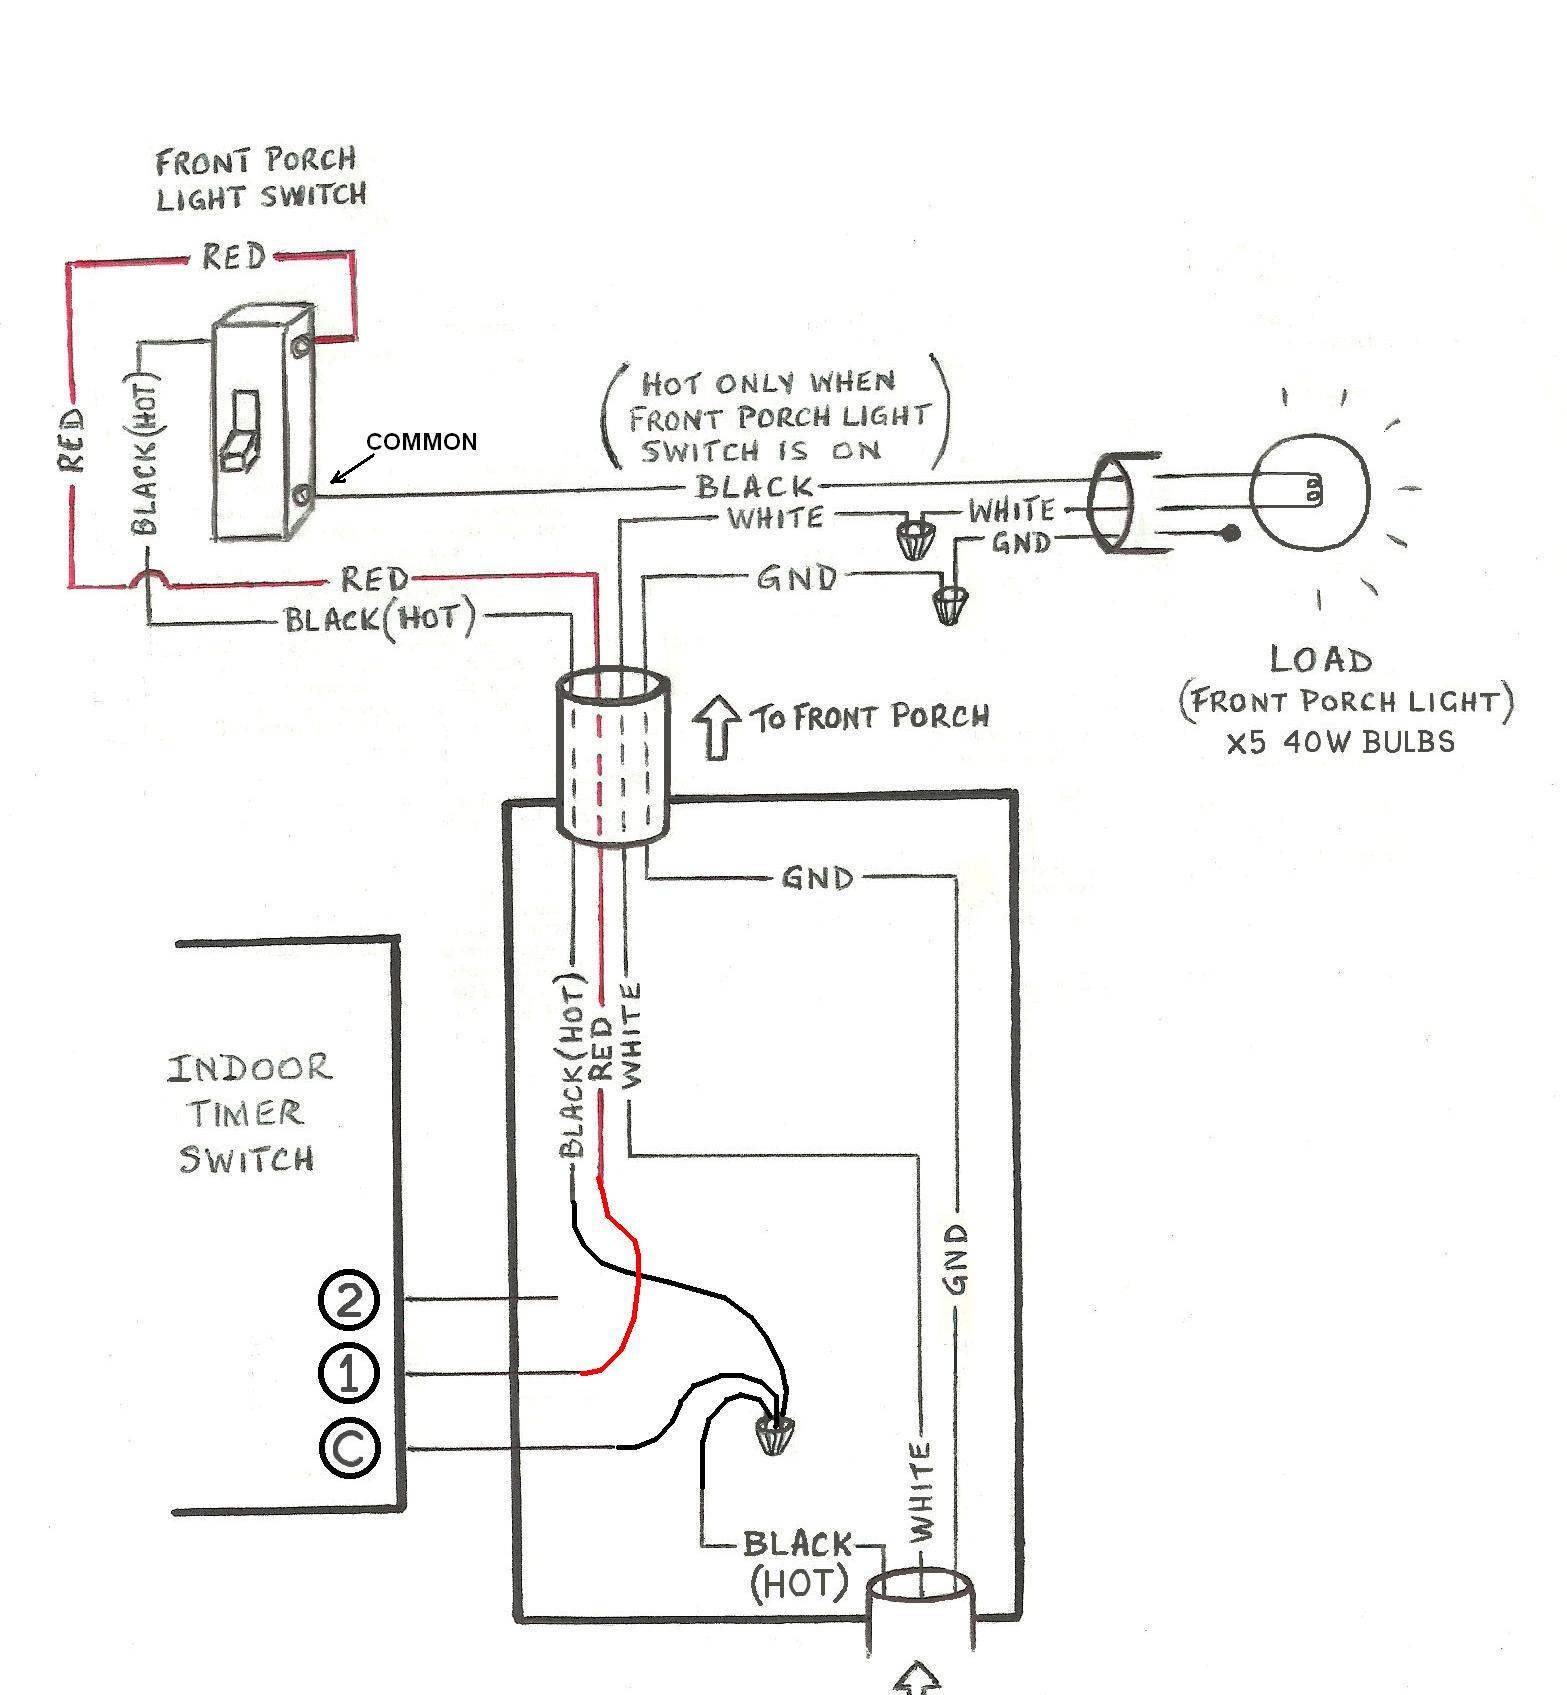 hight resolution of wiring diagram for bathroom extractor fan 1 wiring diagram source http wwwjustanswercom ford 388vqneeddiagramford1998windstar3